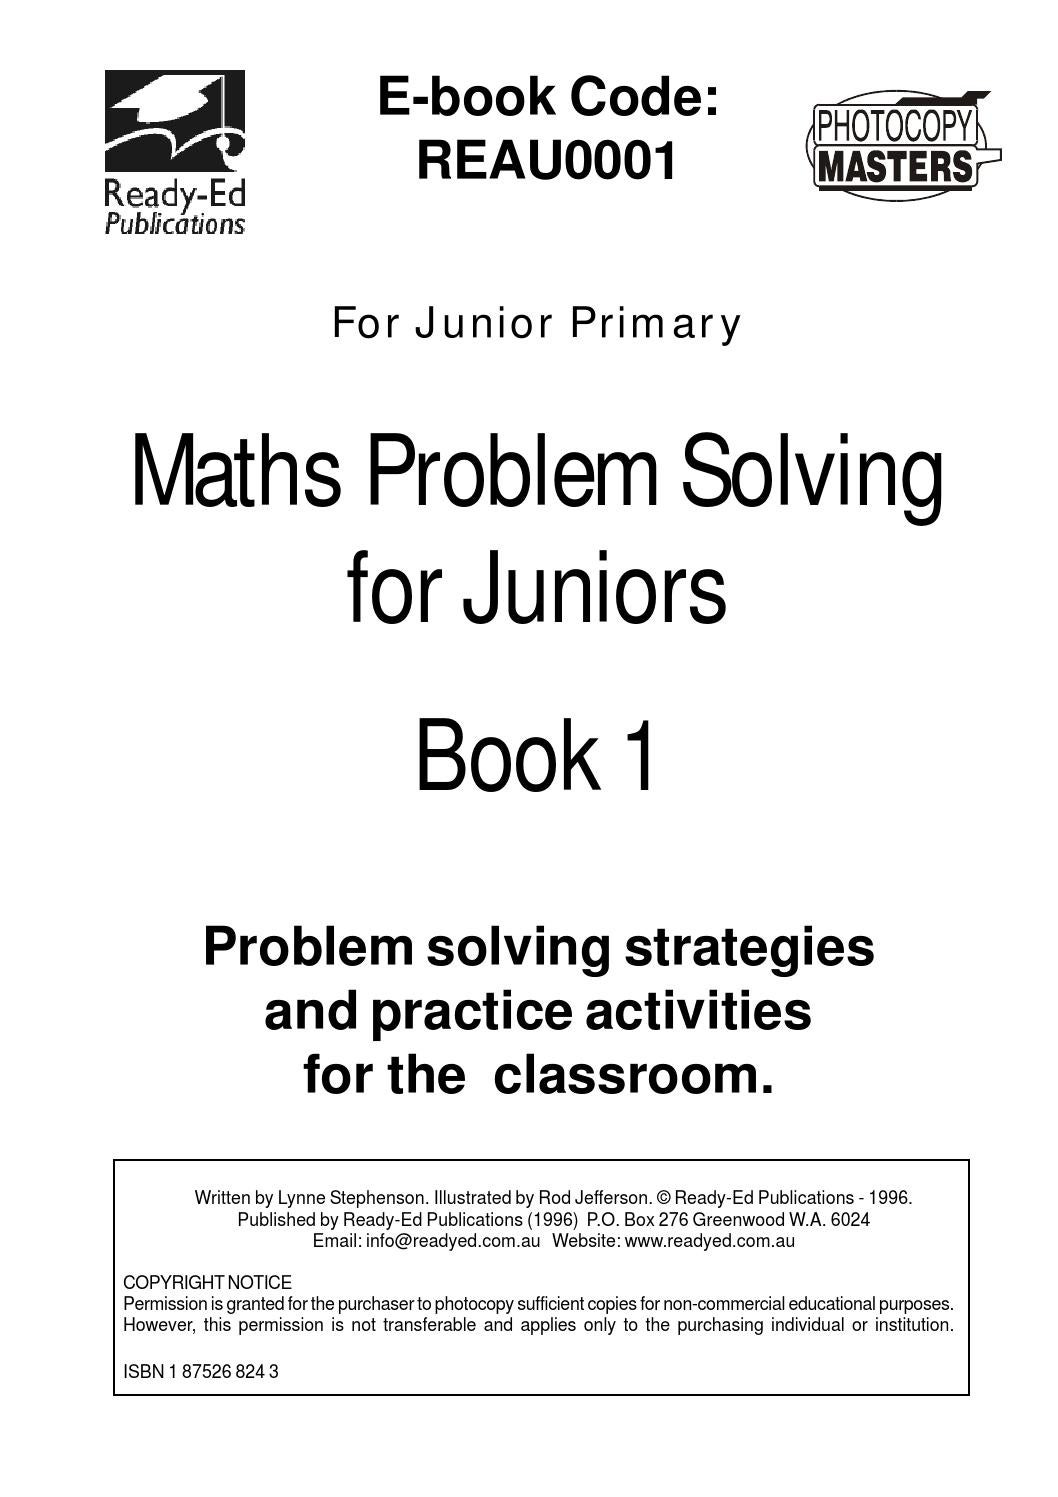 Maths Problem Solving for Juniors - Book 1 by Ready-Ed Publications ...